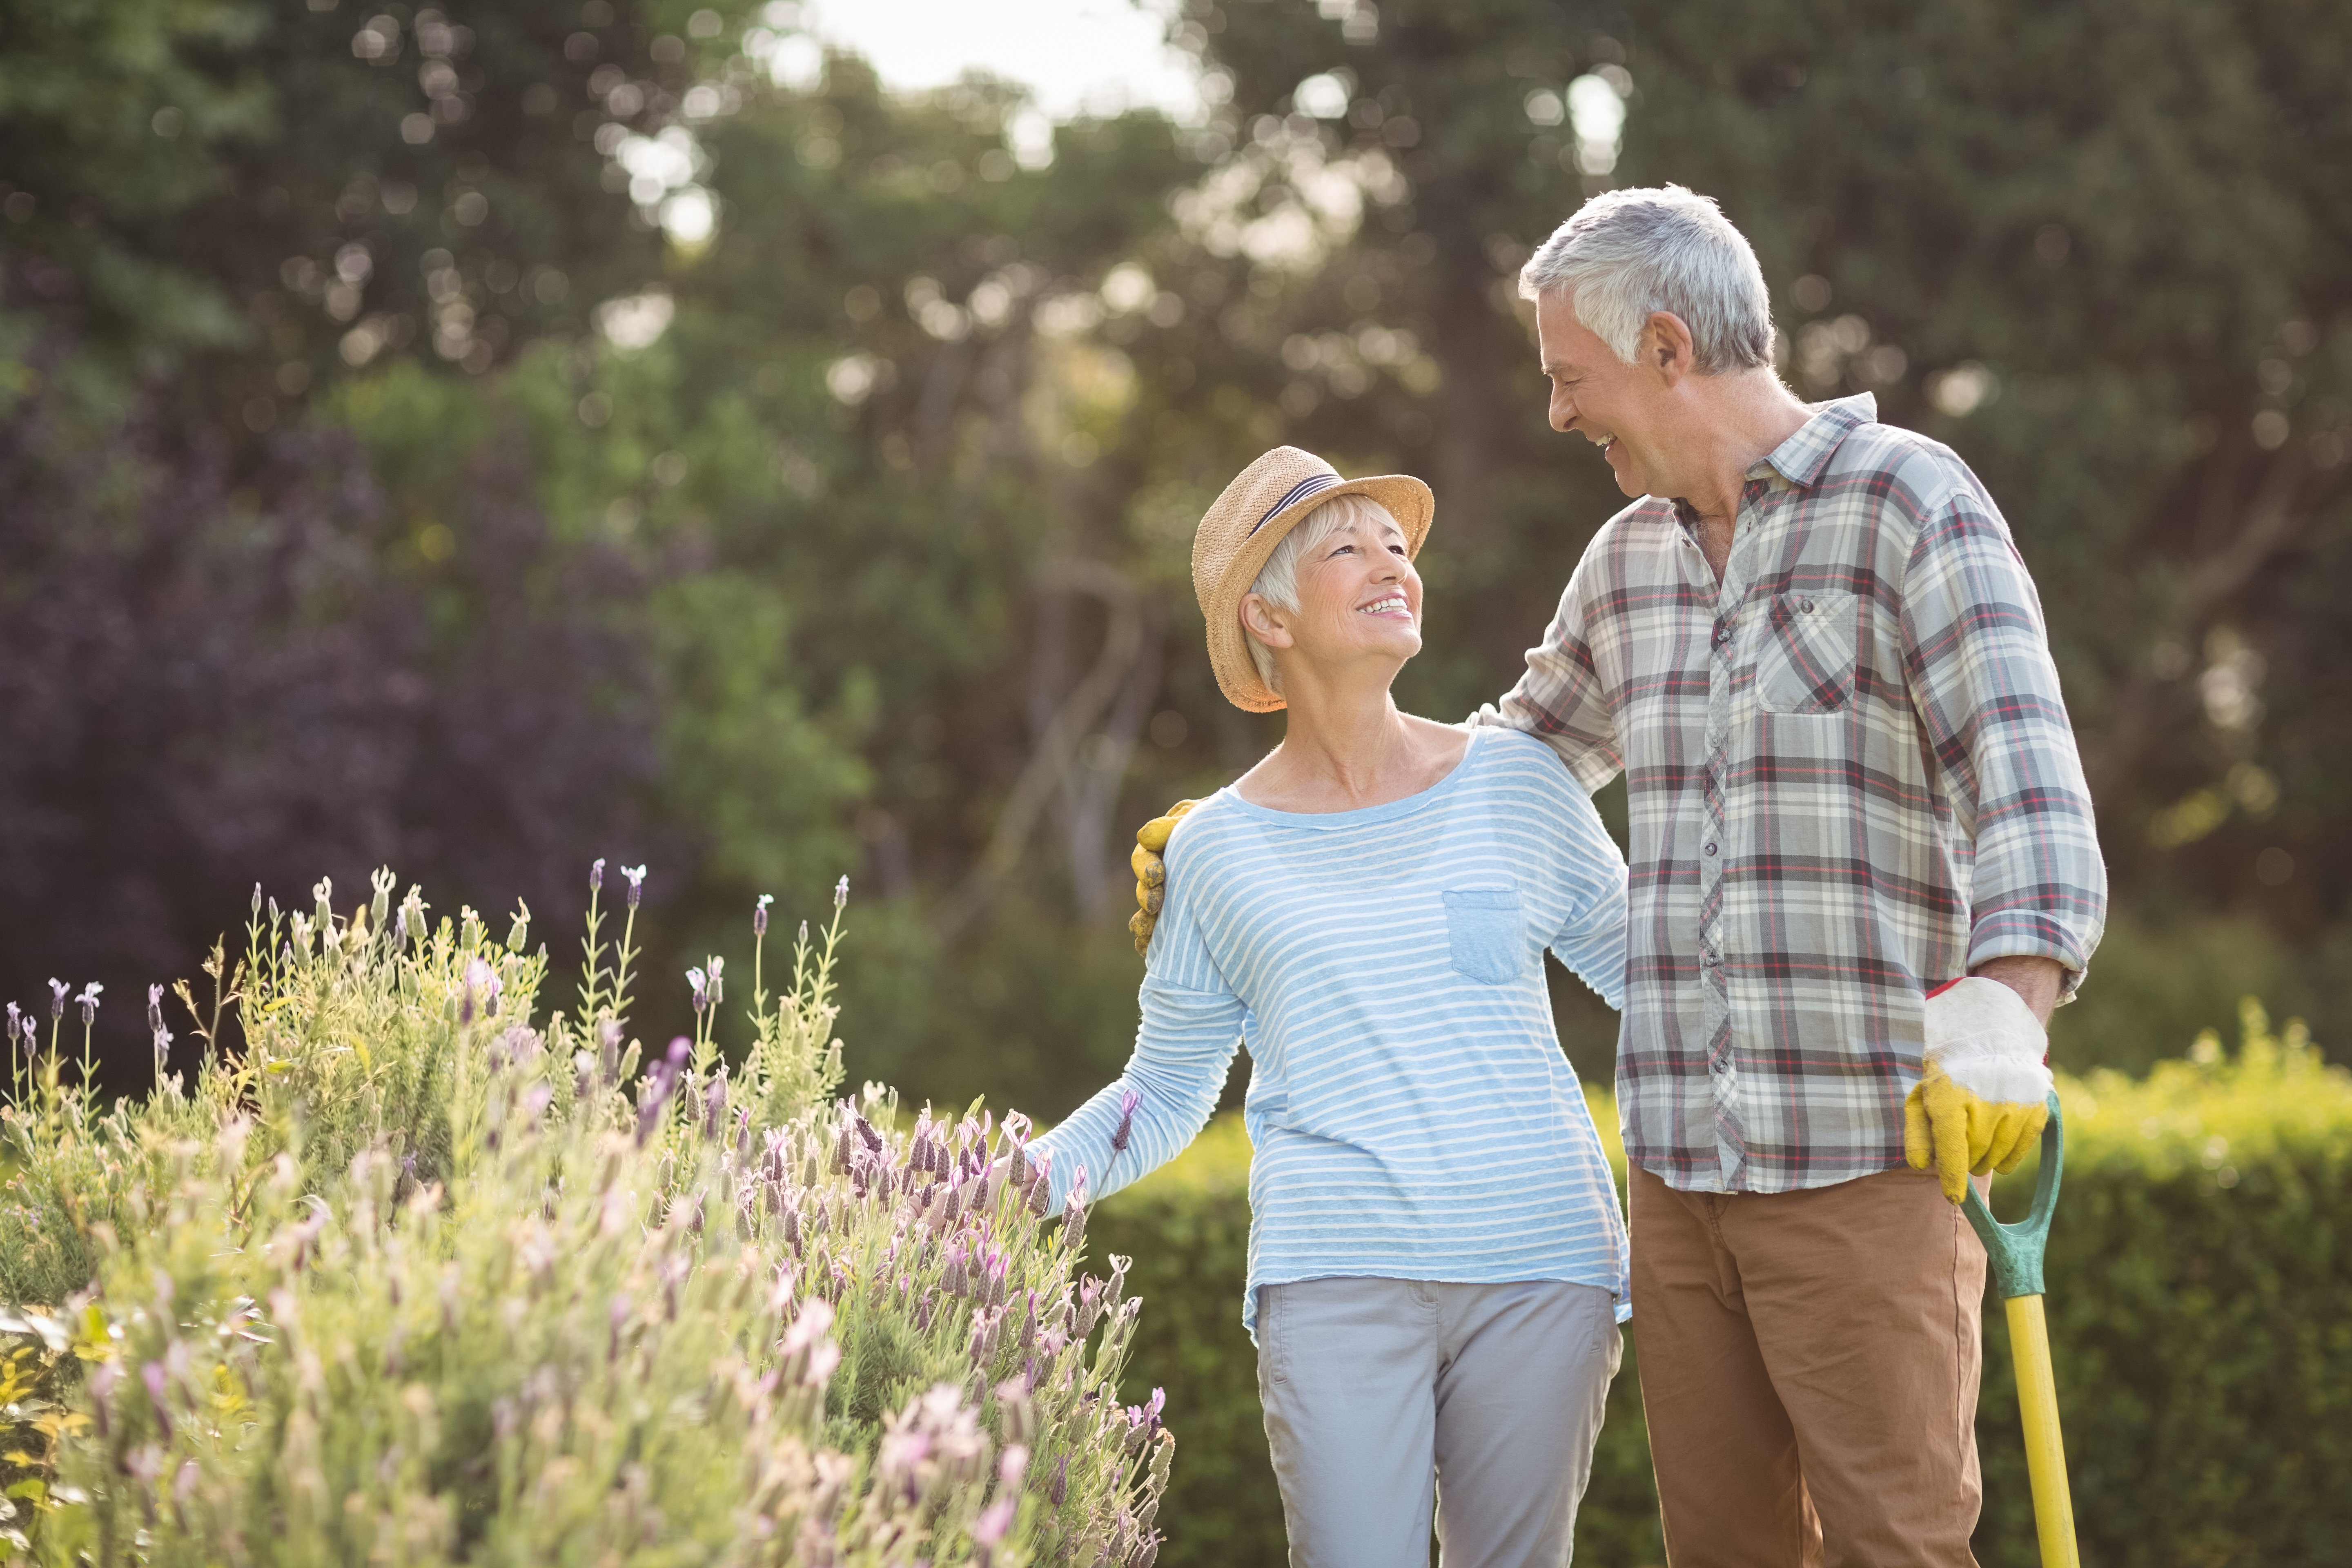 A happy mature man and woman in a garden |Source: Shutterstock